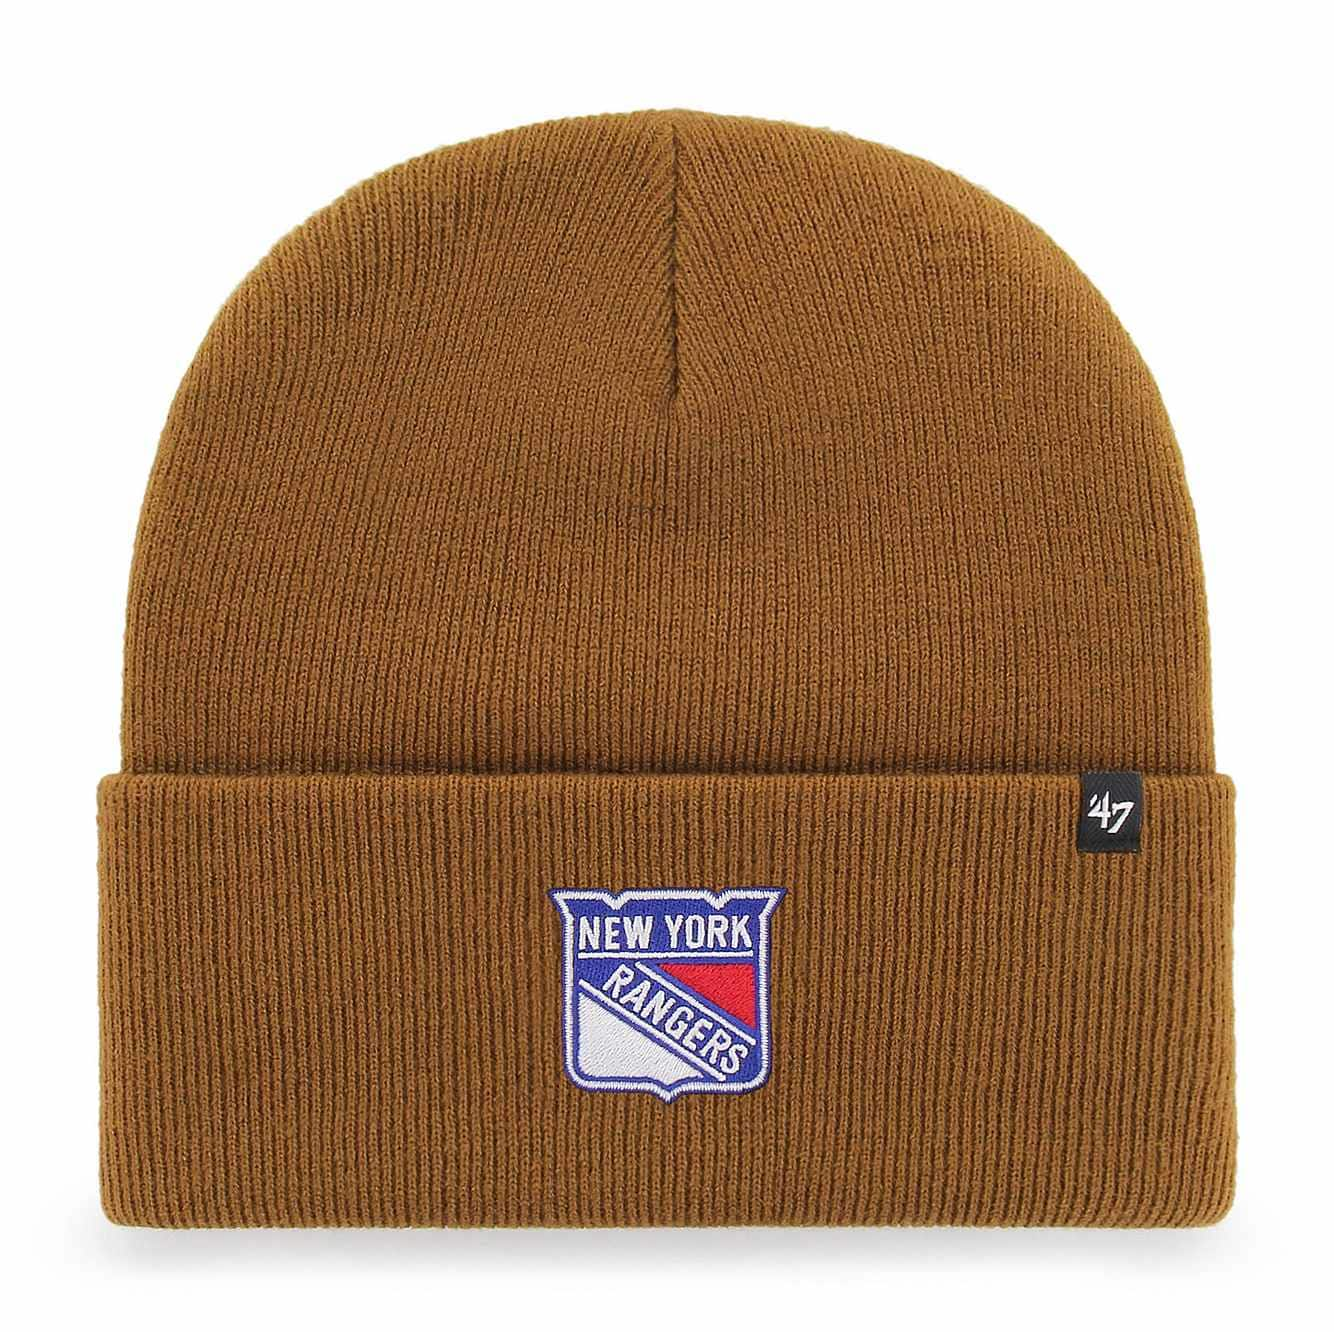 Picture of New York Rangers Carhartt x '47 Cuff Knit in Carhartt Brown